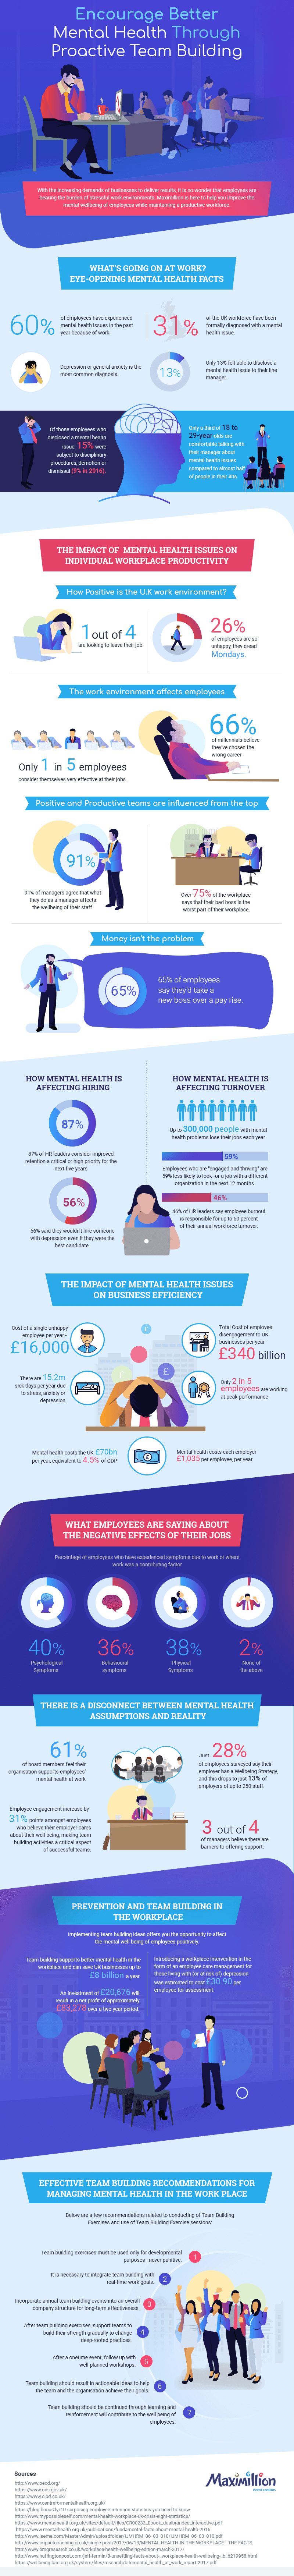 Mental Health Infographic: The Importance of Proactive Team Building